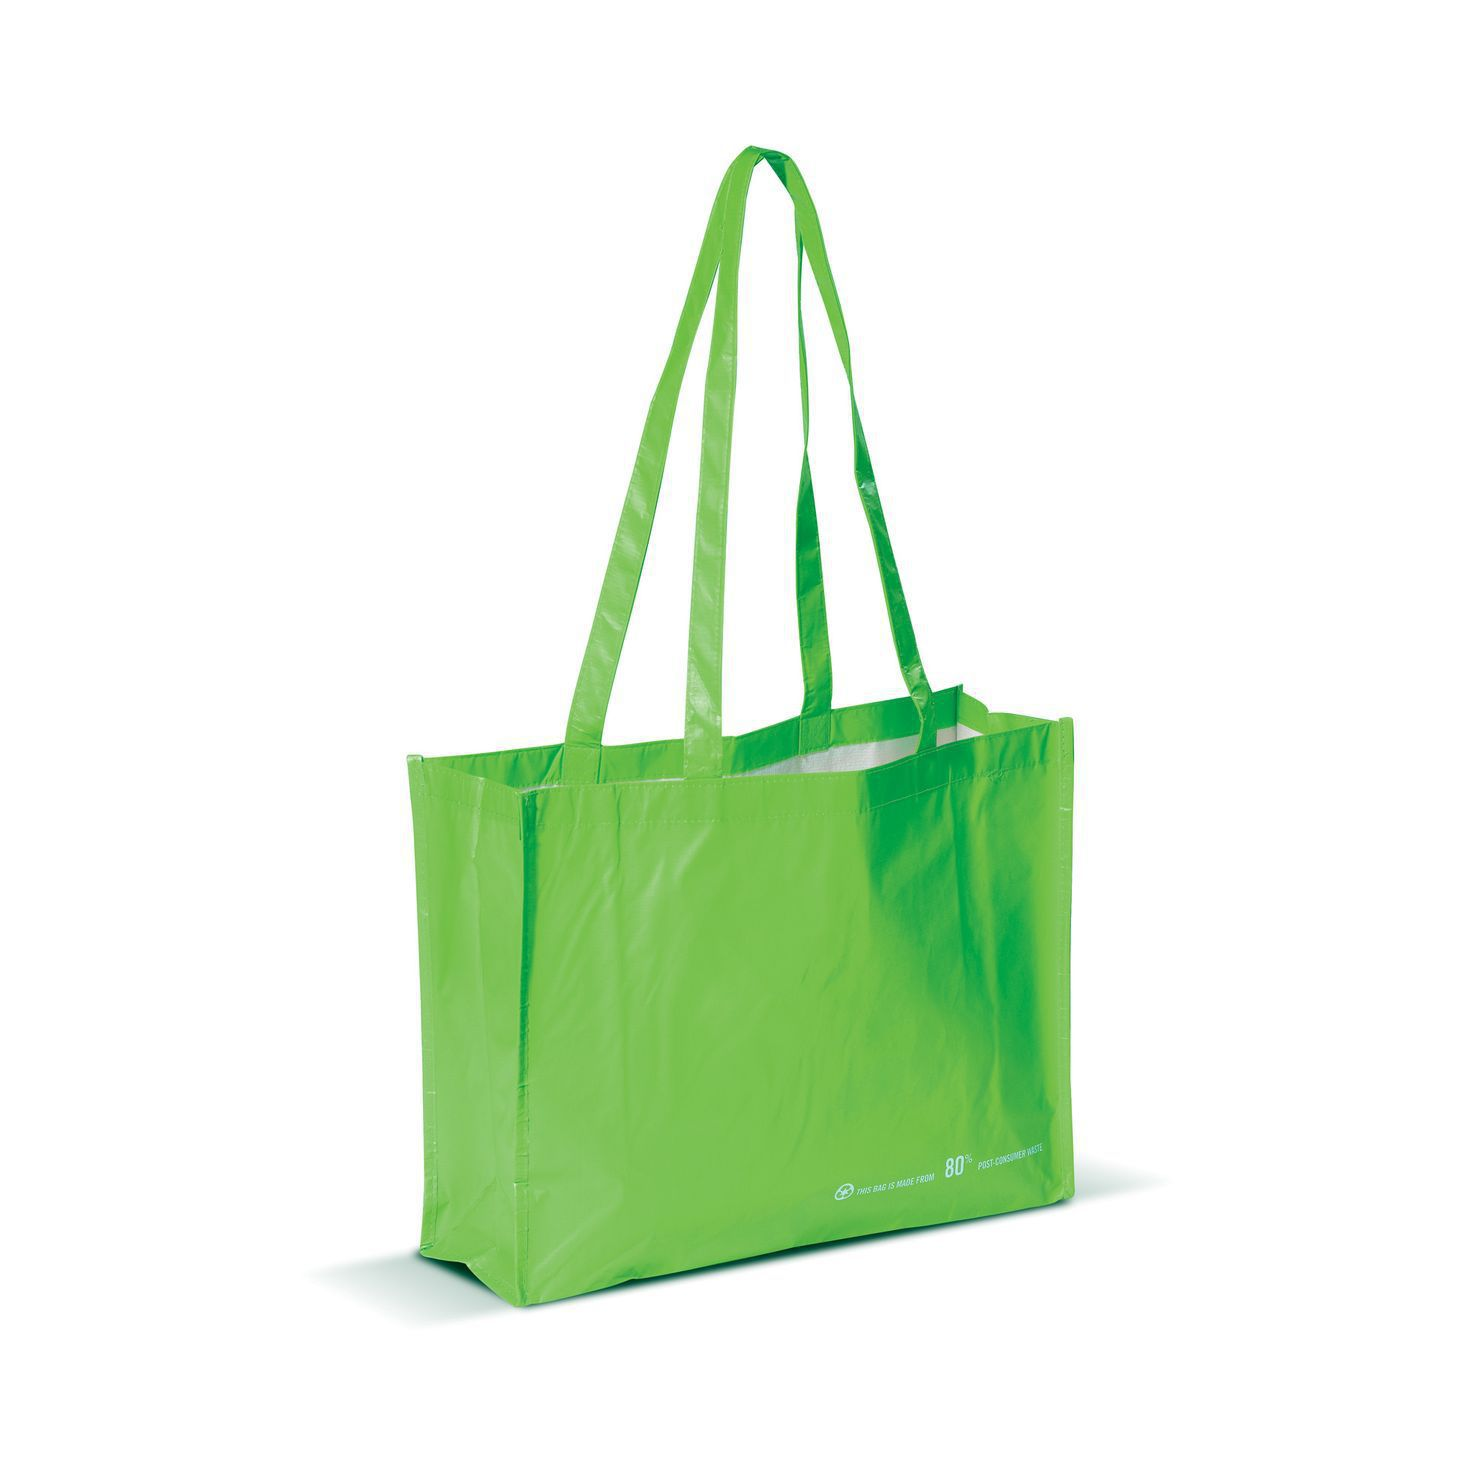 Lichtgroene Shopper | Gerecycled PET